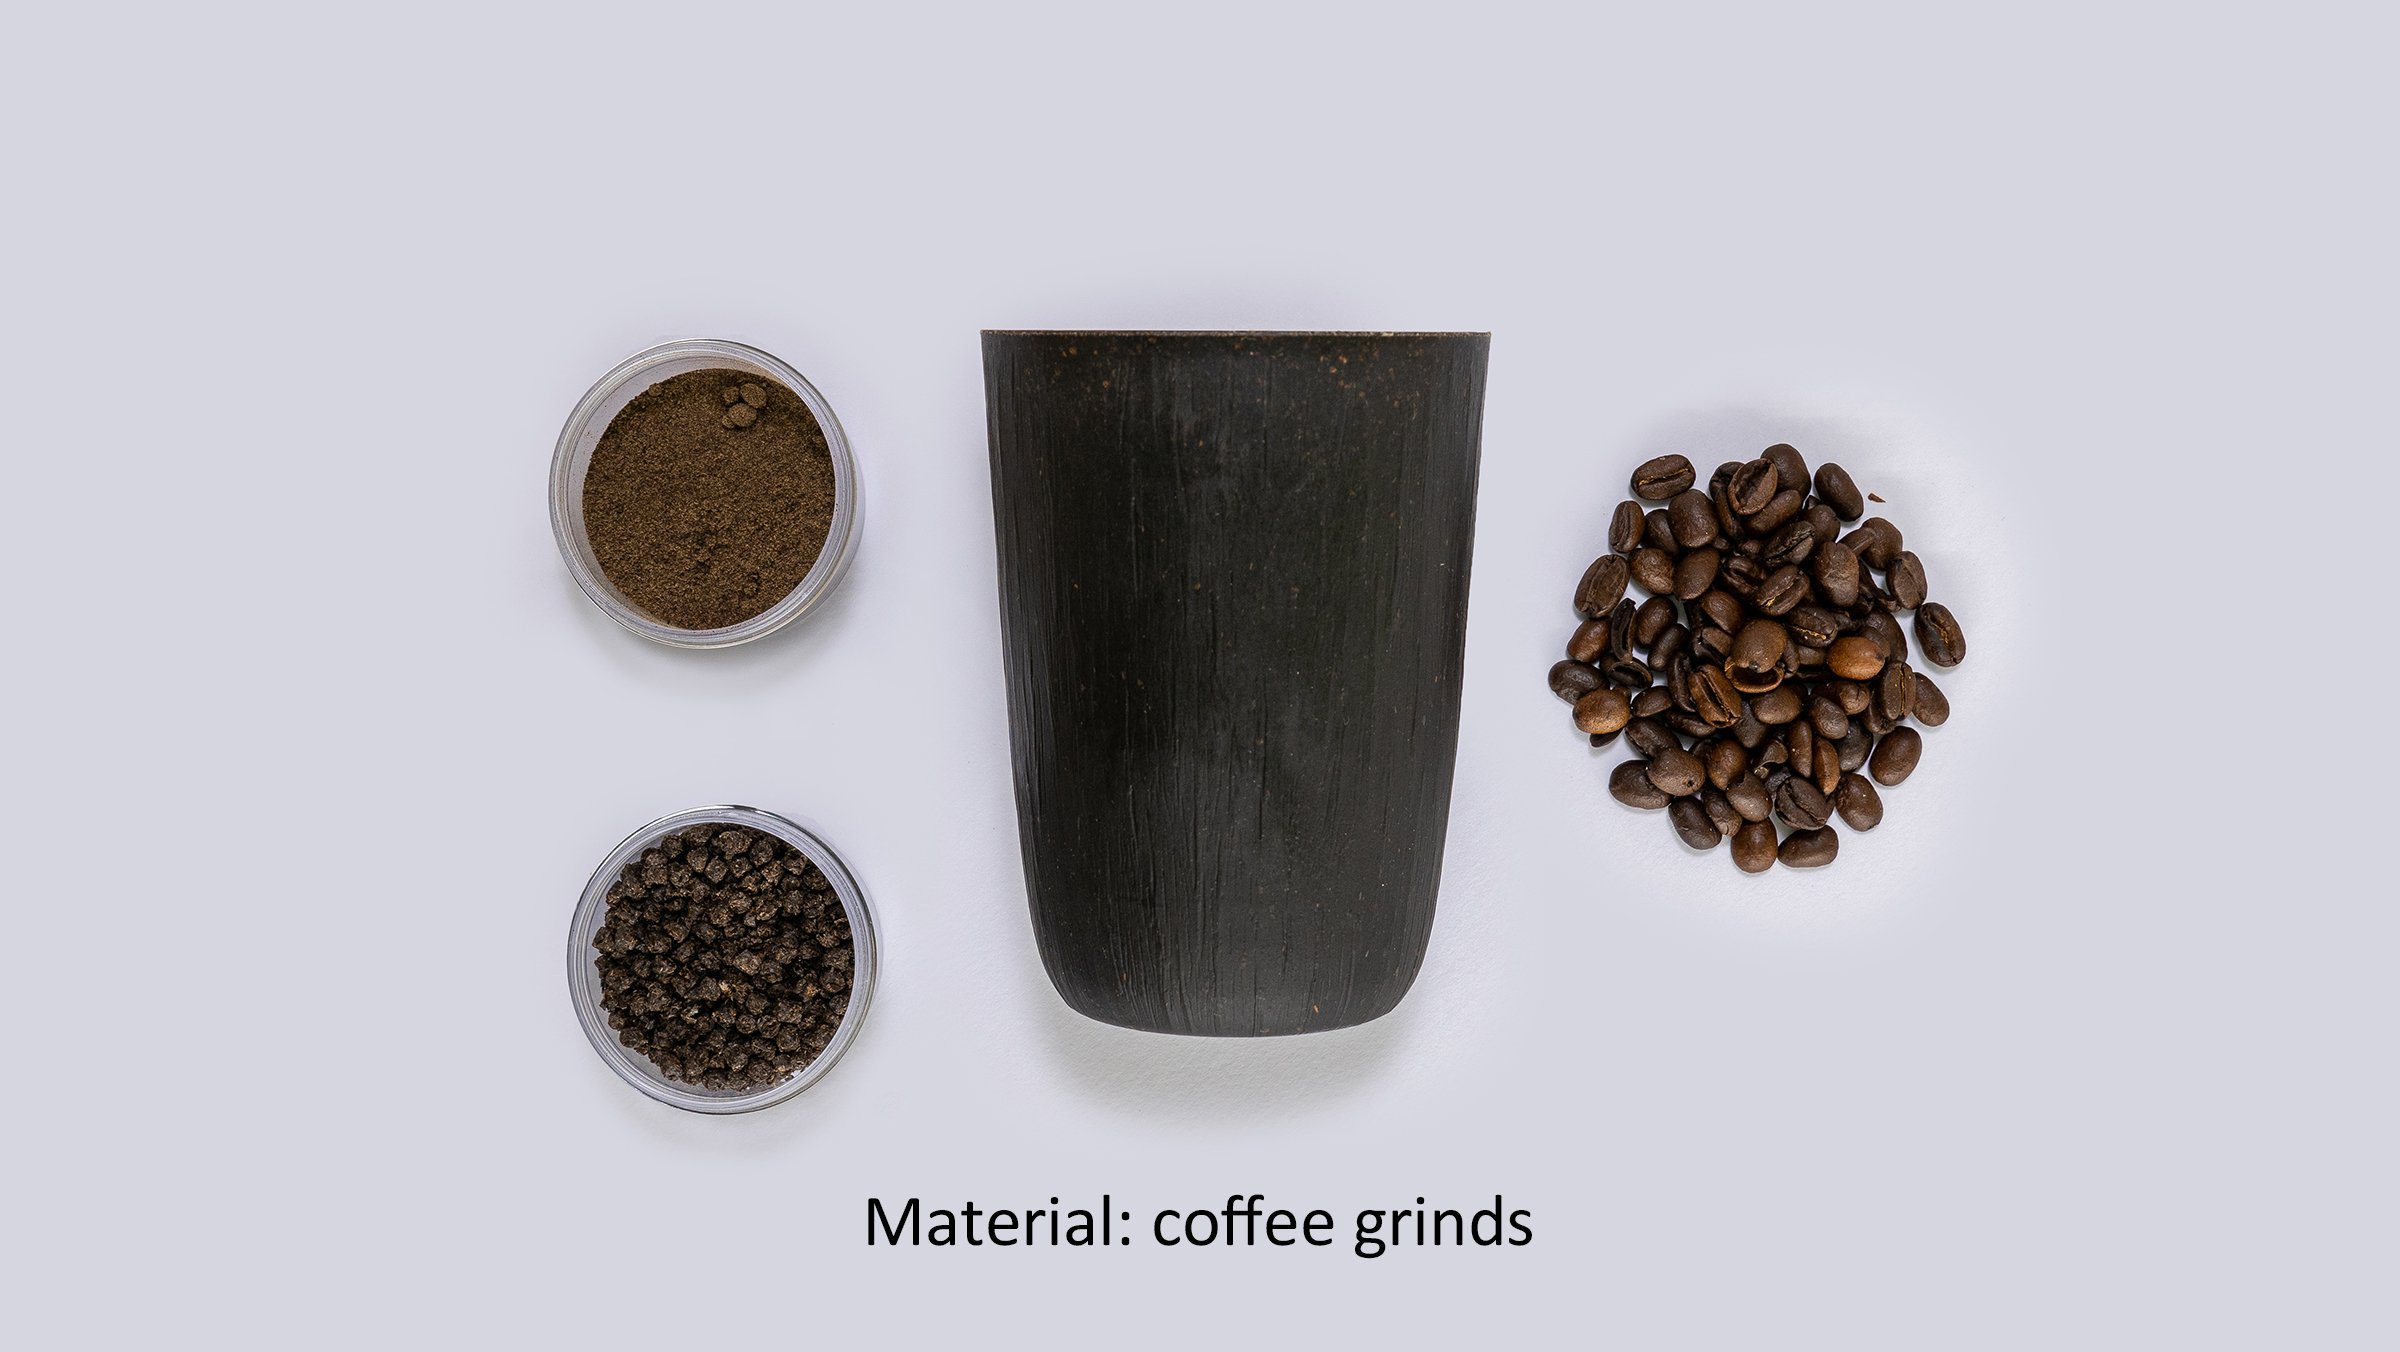 Photo: Reusable cups using cellulose fiber (material: coffee grinds).